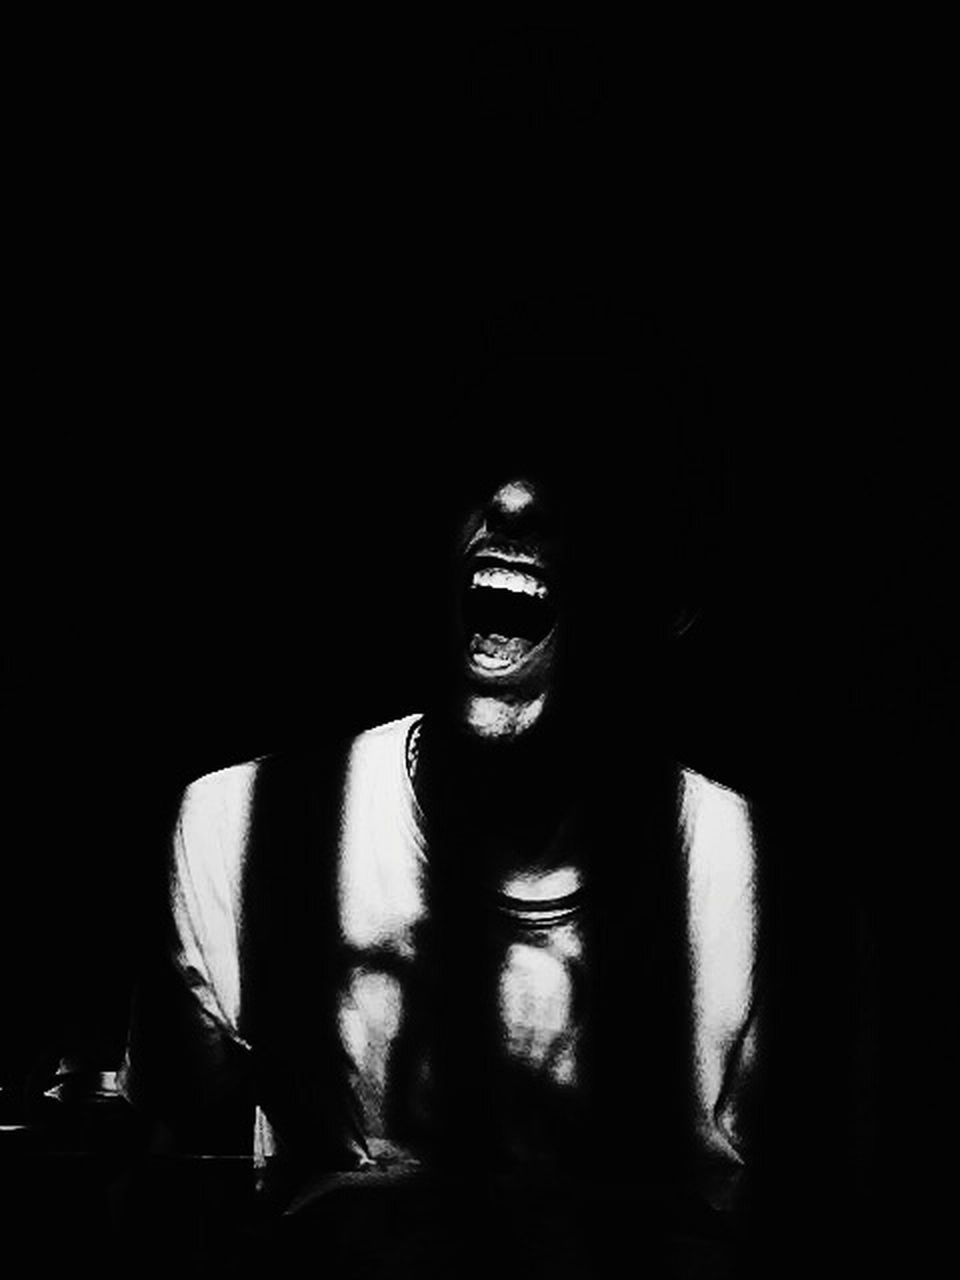 shadow, one person, smiling, indoors, dark, happiness, front view, real people, leisure activity, young adult, lifestyles, cheerful, portrait, night, young women, halloween, black background, adult, one man only, adults only, people